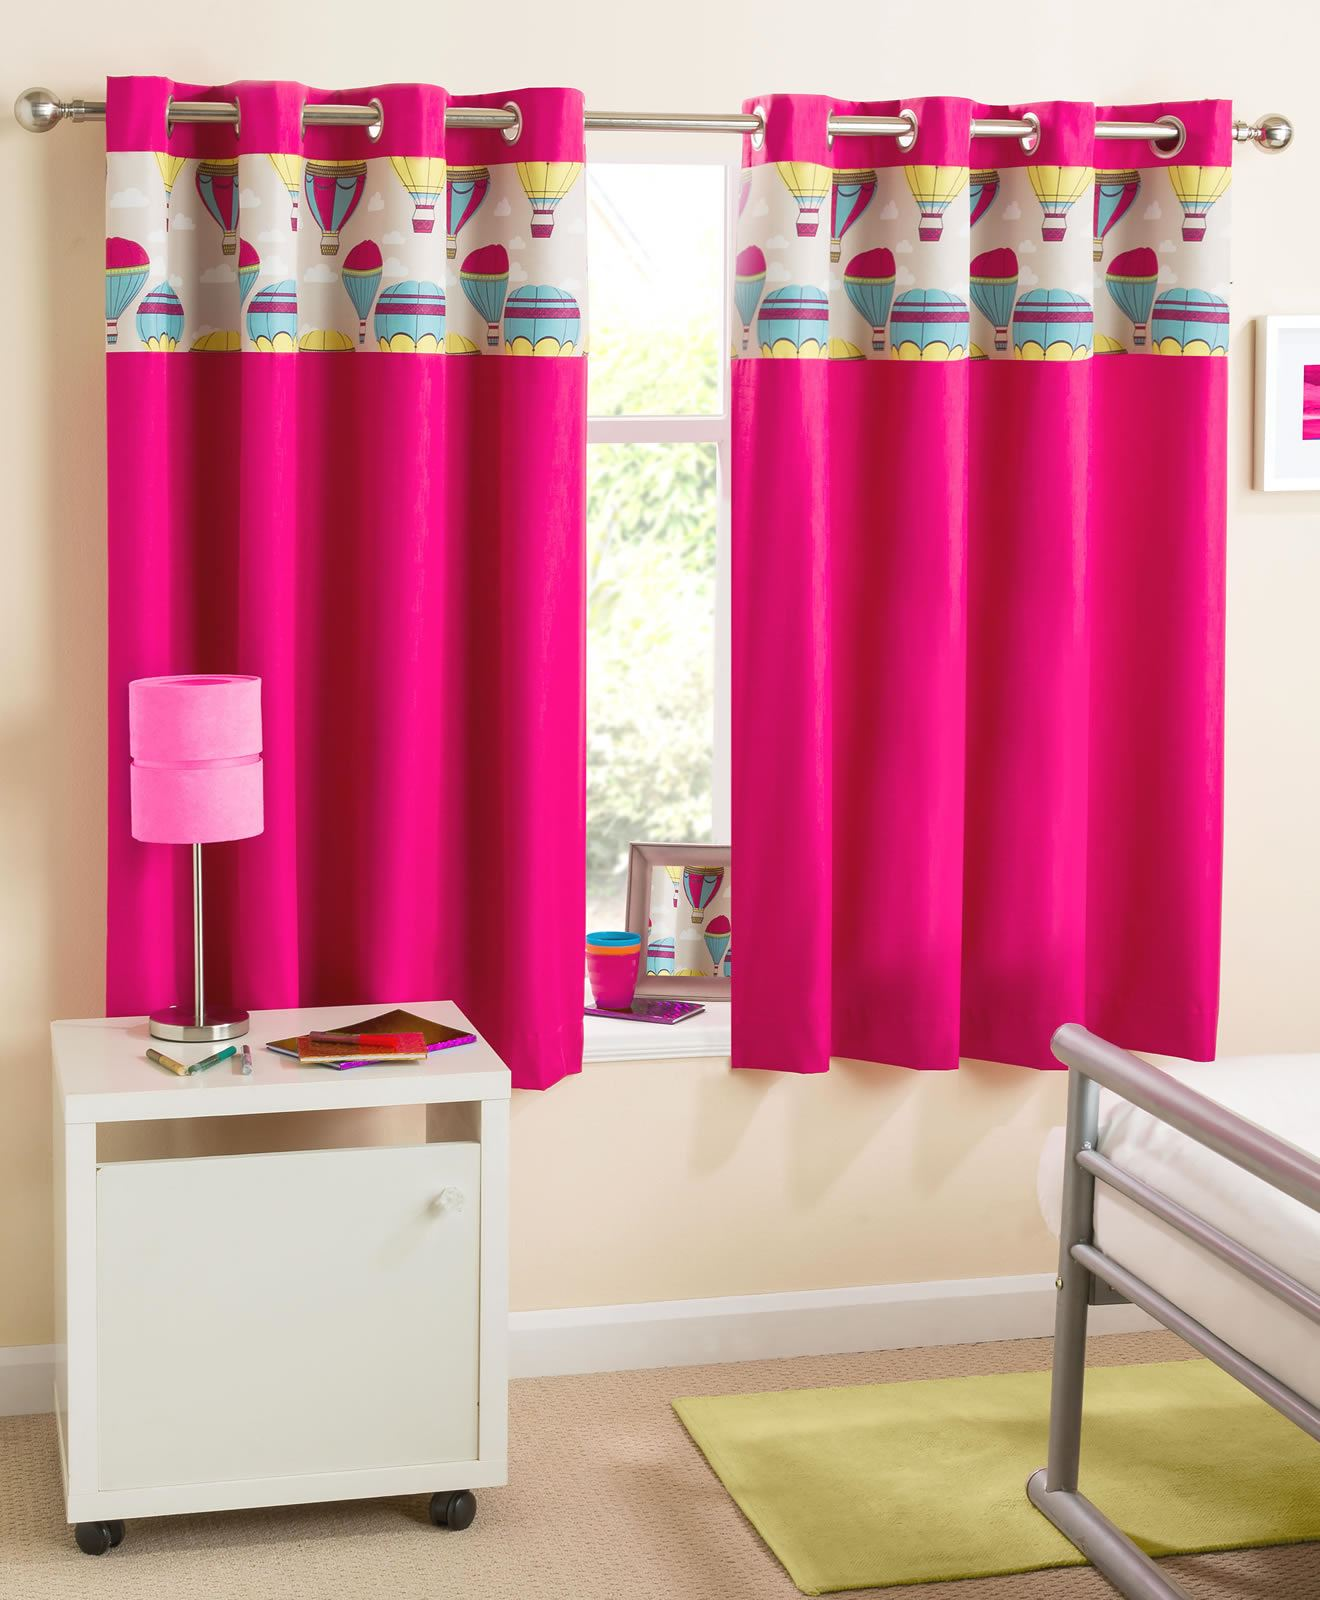 loading tranquility textiles pink readymade curtain made tyrone zoom ready clearance curtains